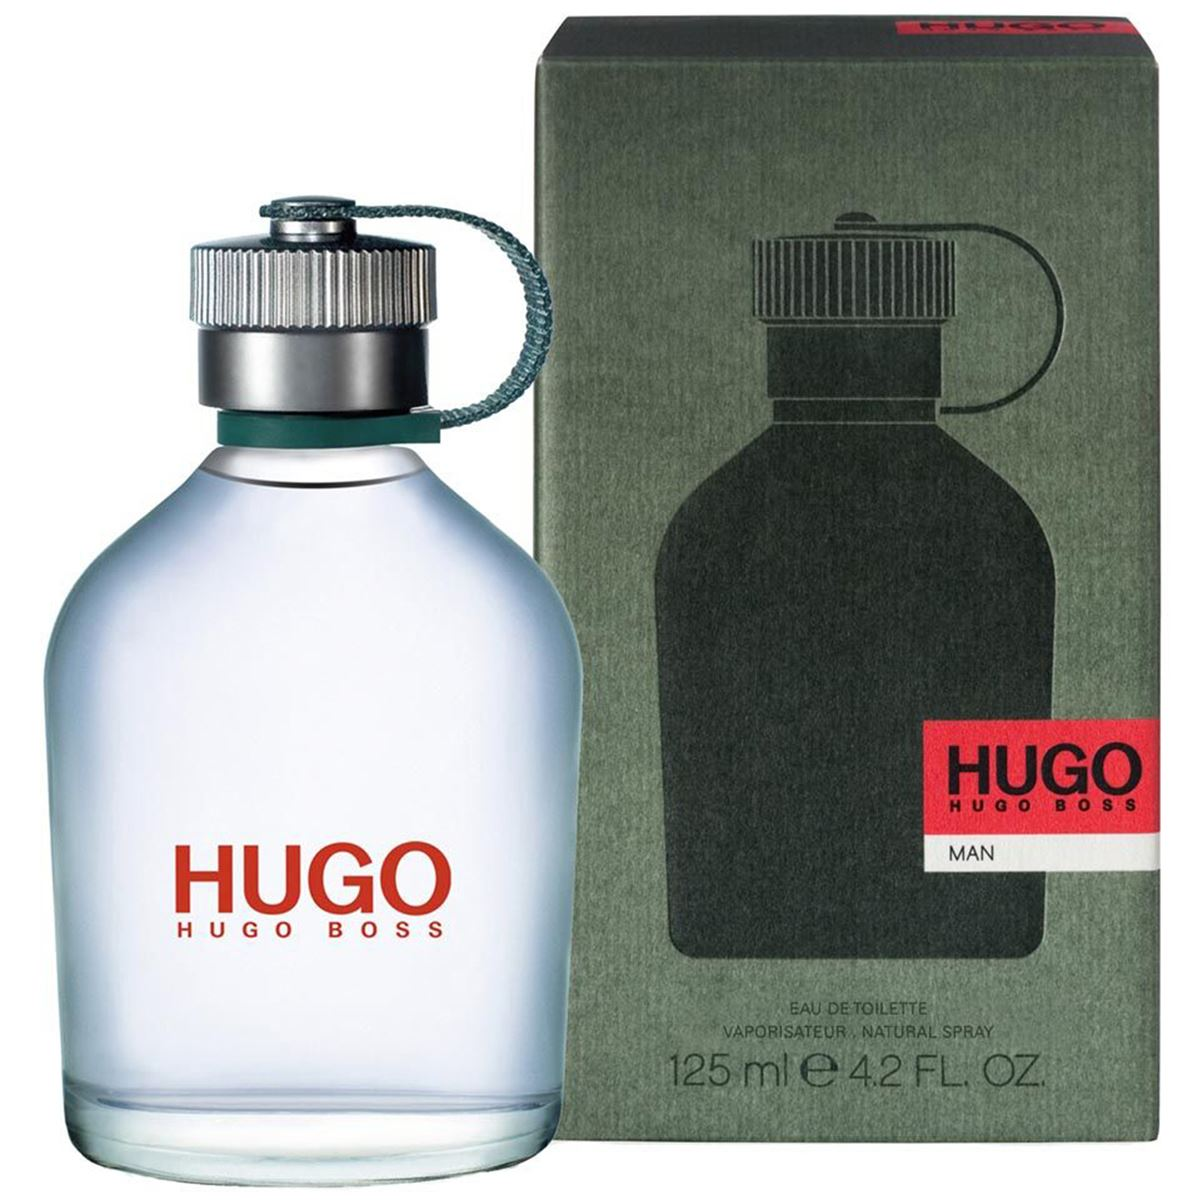 Hugo man edt 125 ml  - Sanborns